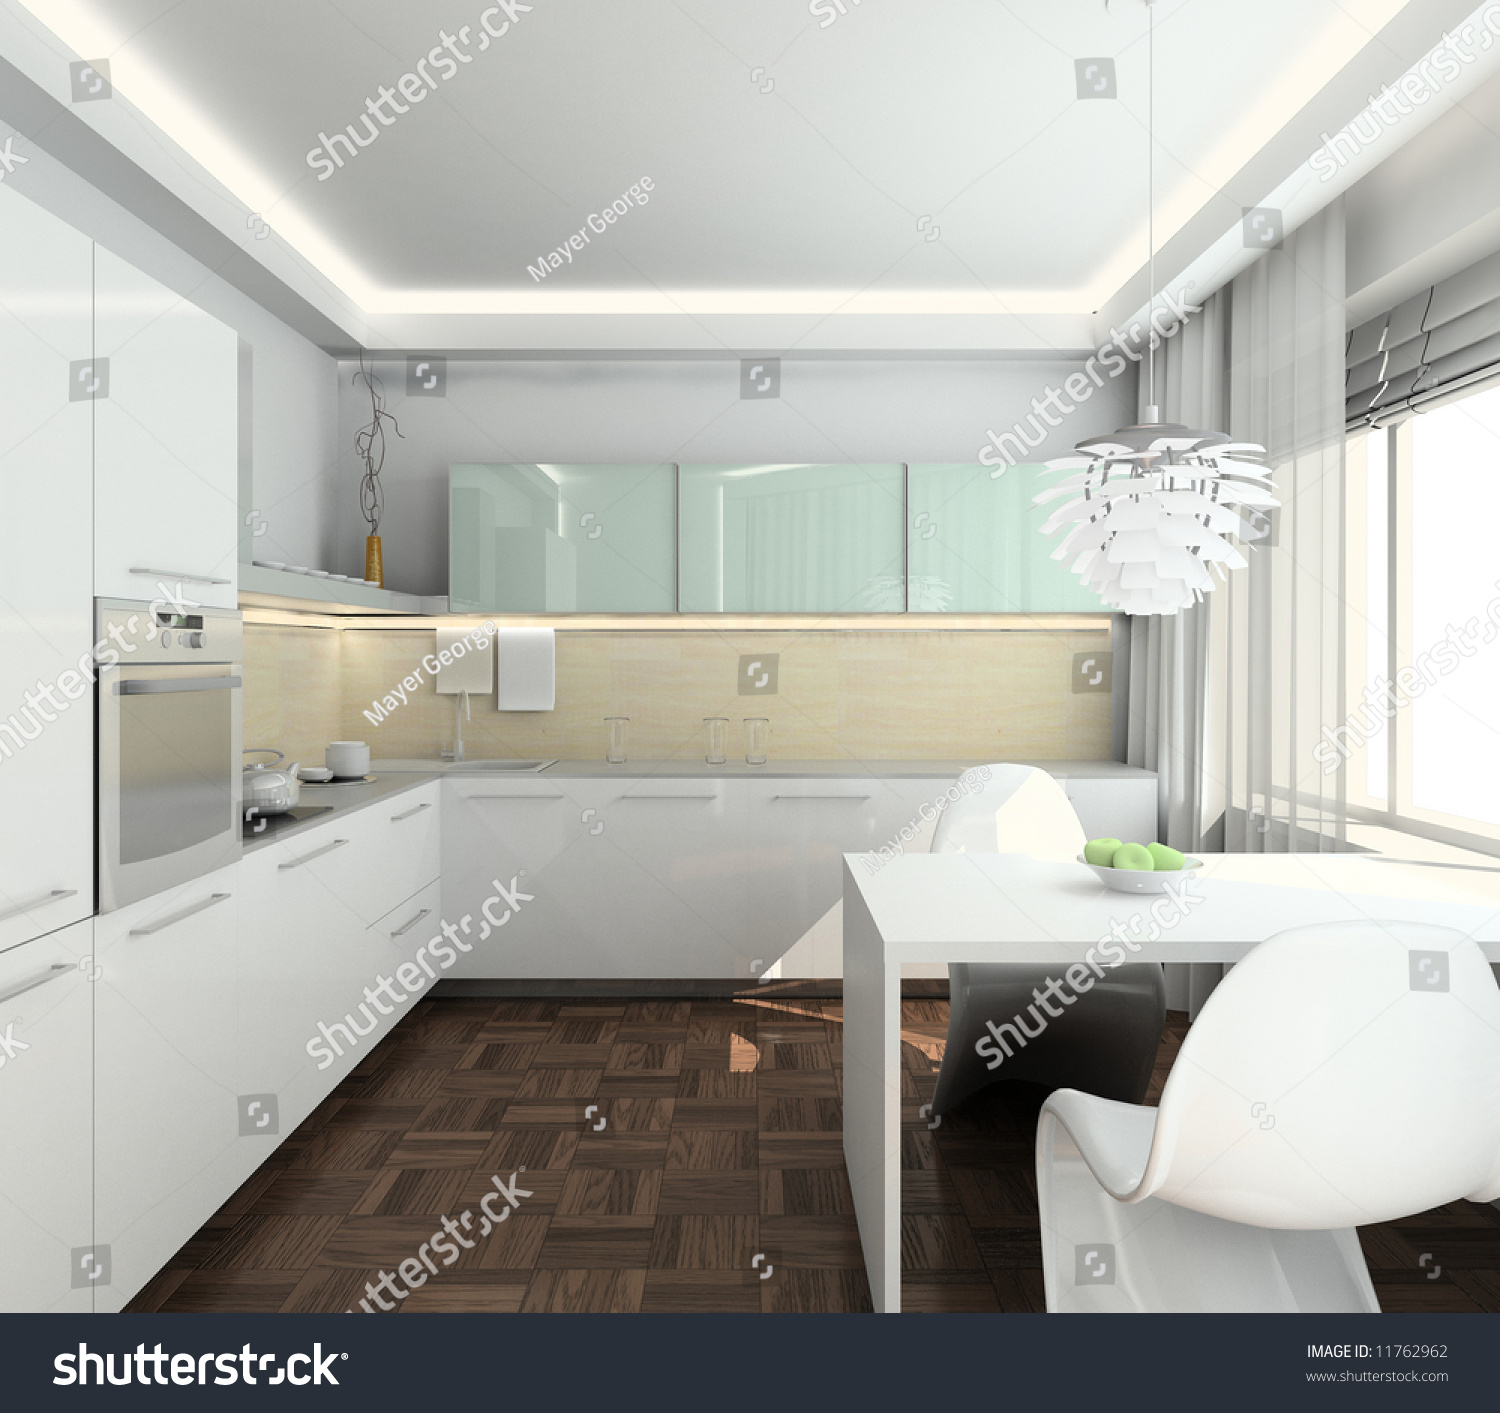 Traditional White Kitchen Design 3d Rendering: Modern Design Interior Of Kitchen. 3d Render Stock Photo